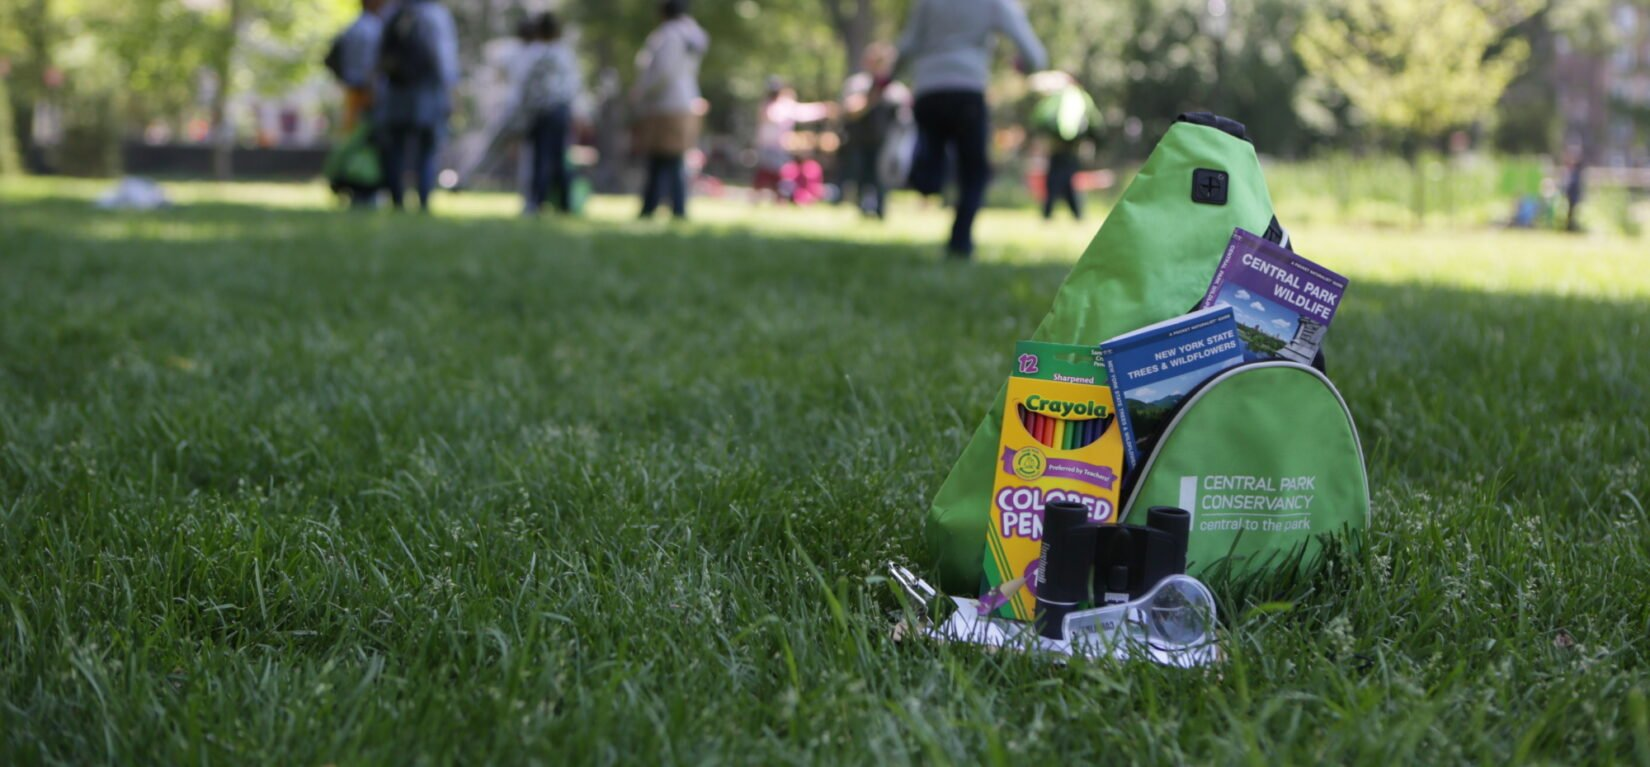 A Discovery Kit with crayons, binoculars, and other goodies, pictured on a lawn in summer